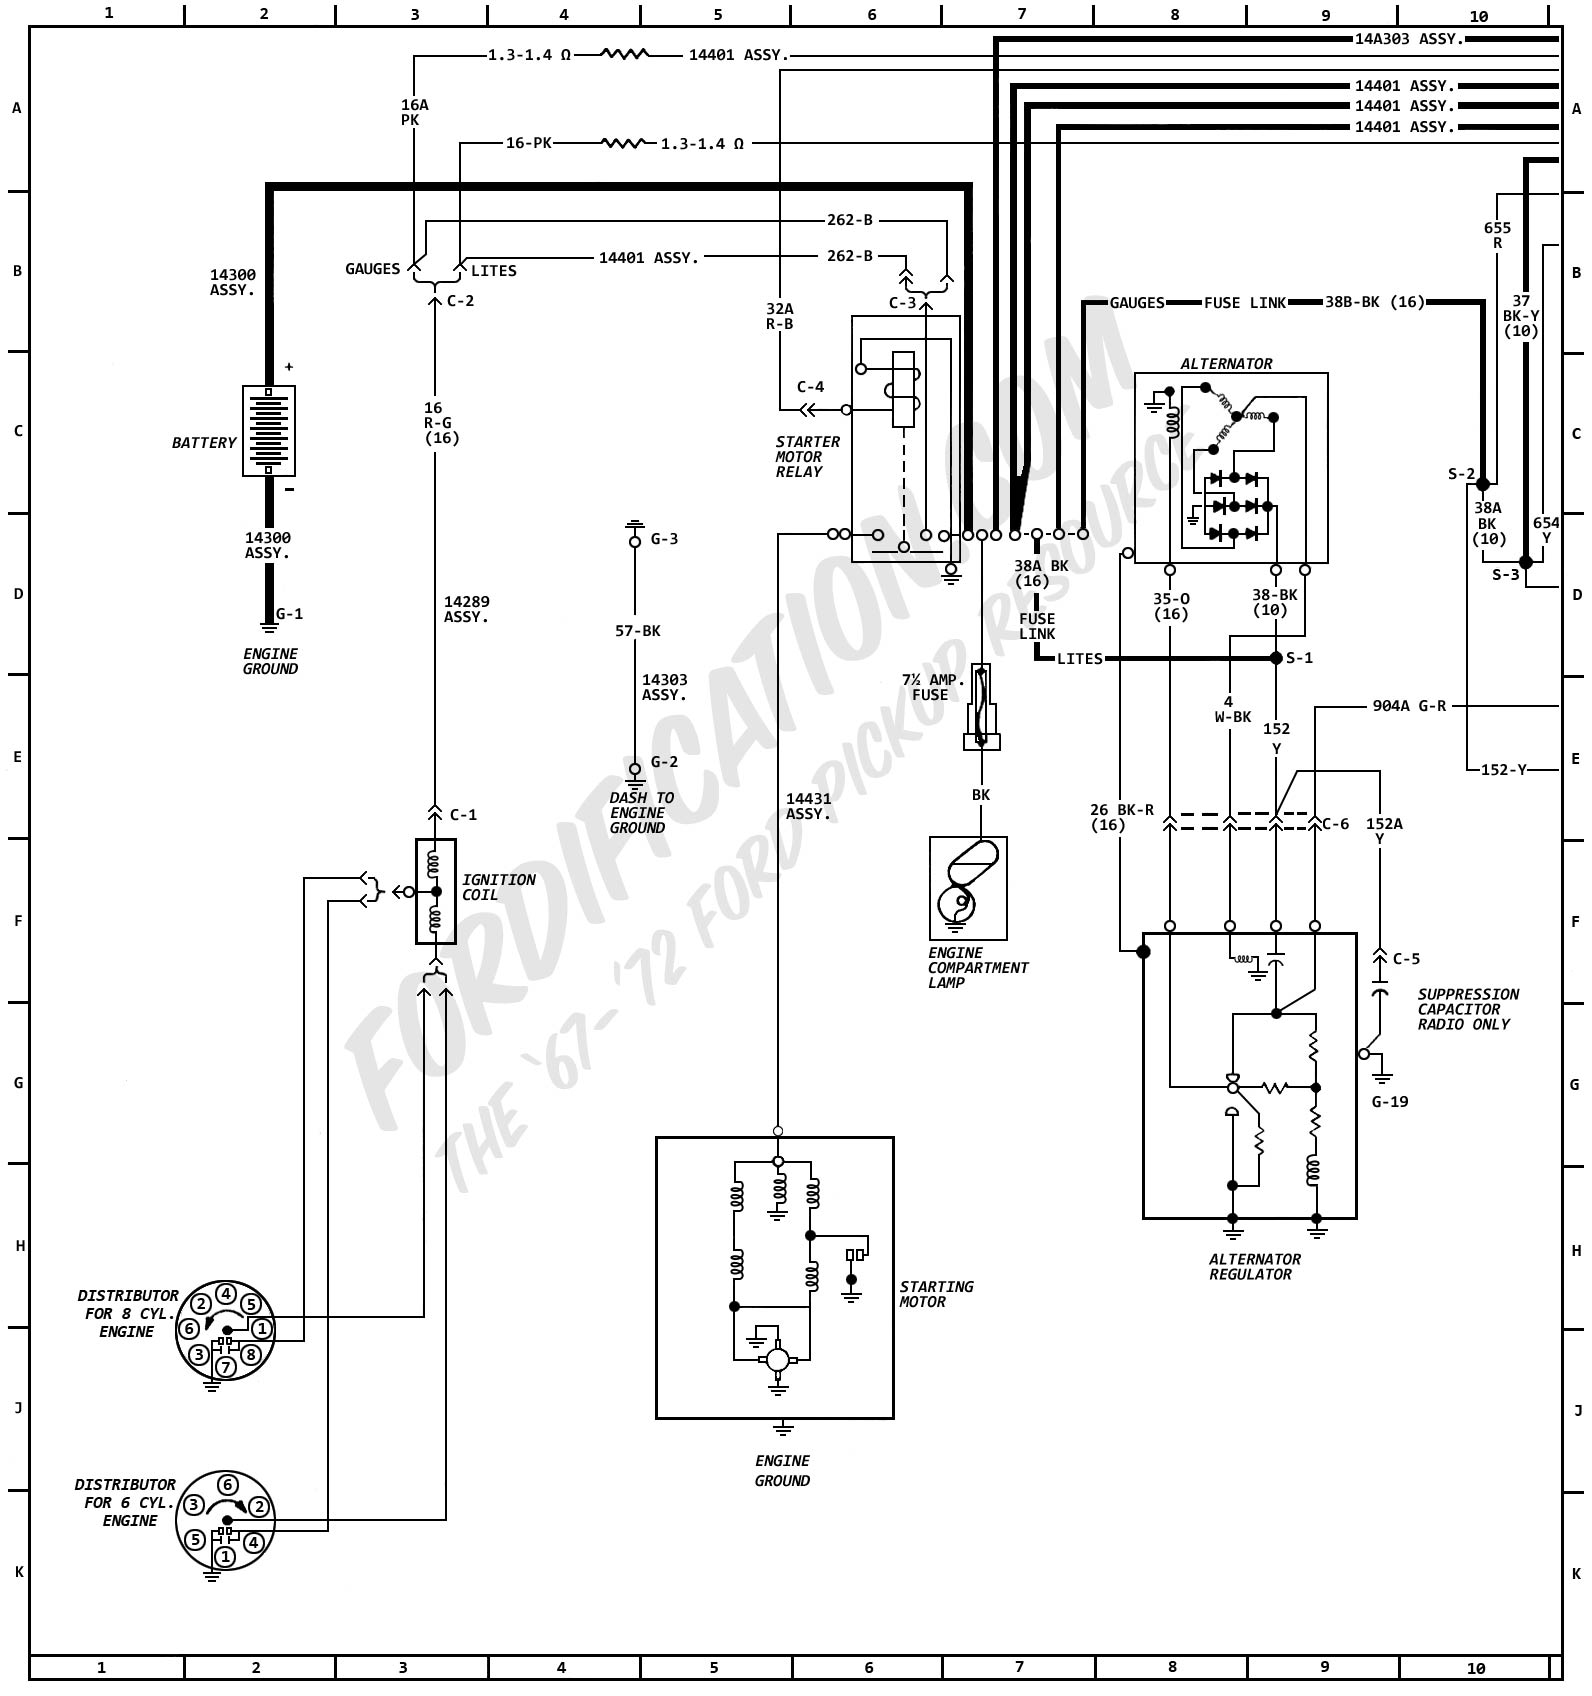 1972MasterWiring_01 1972 ford truck wiring diagrams fordification com 72 ford f100 wiring diagram at honlapkeszites.co